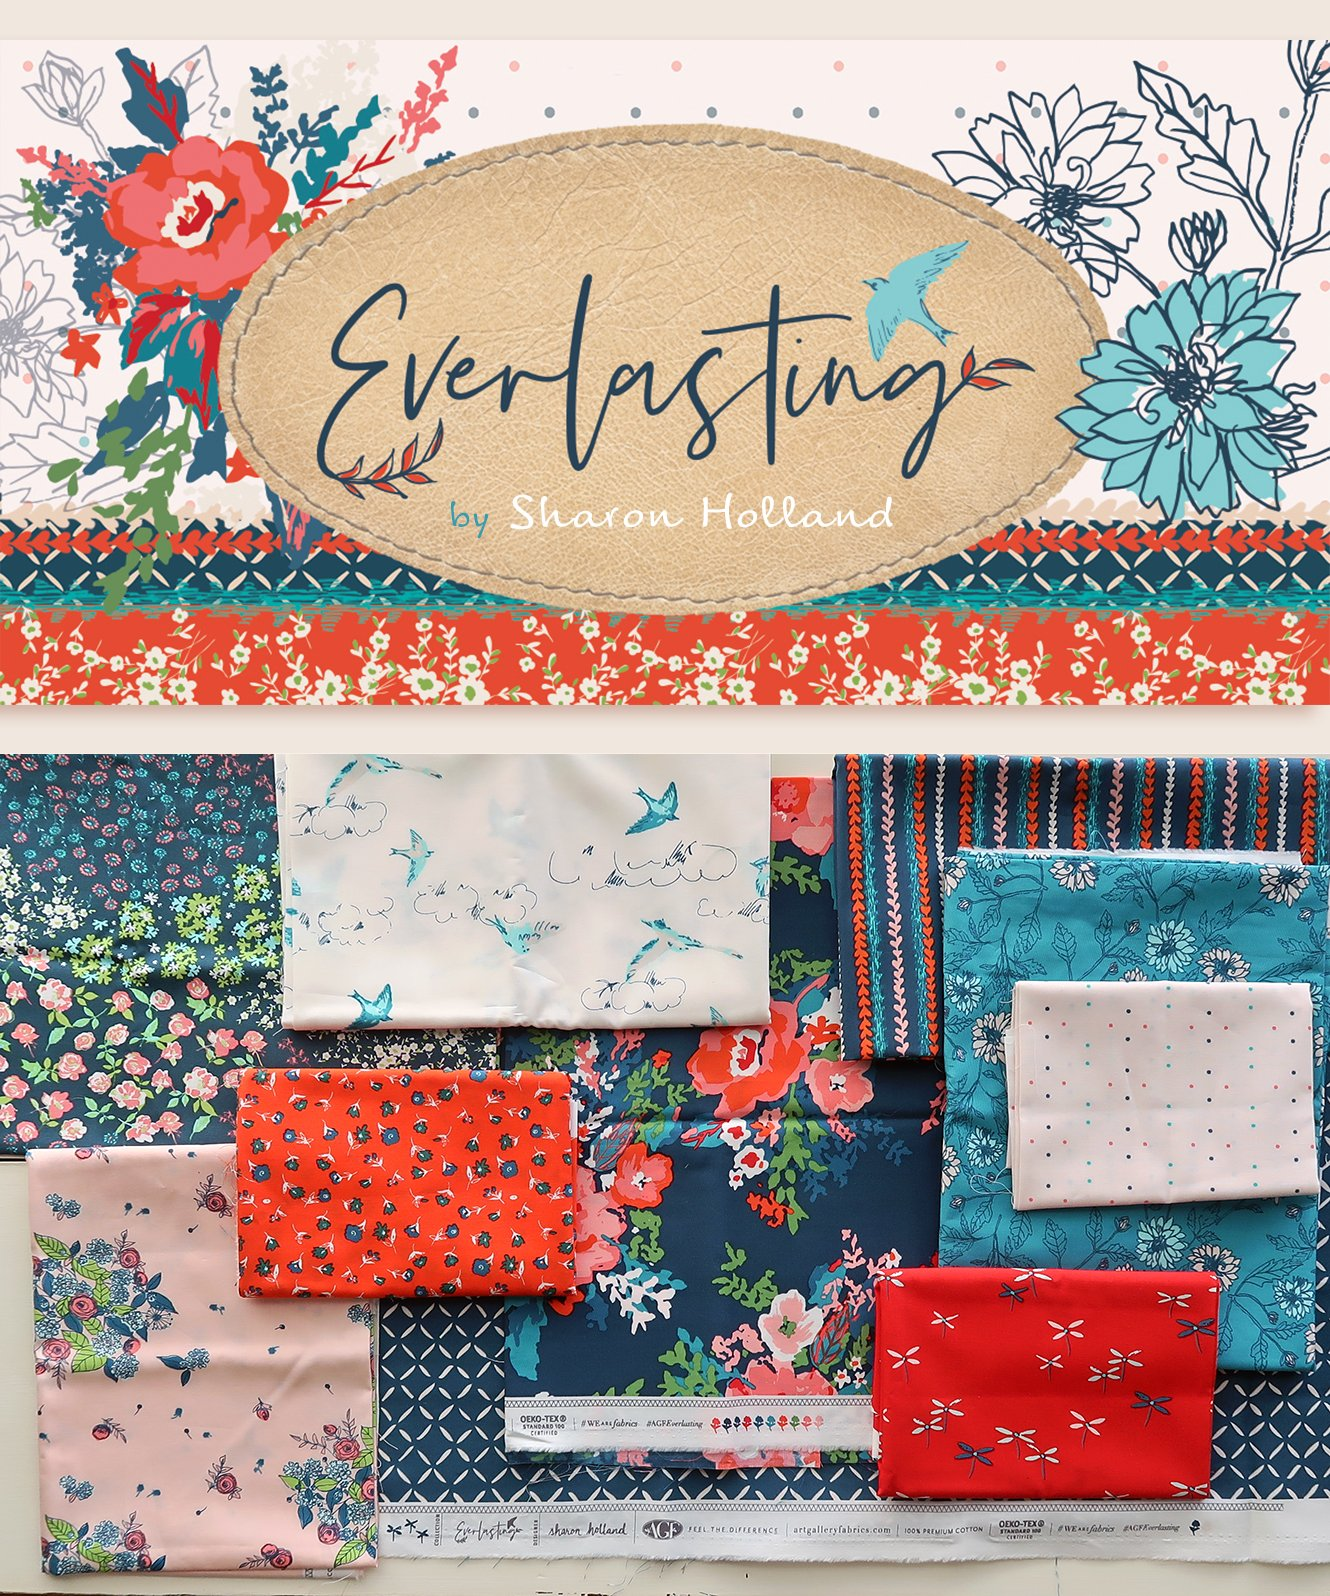 Everlasting - Half Yard Bundle